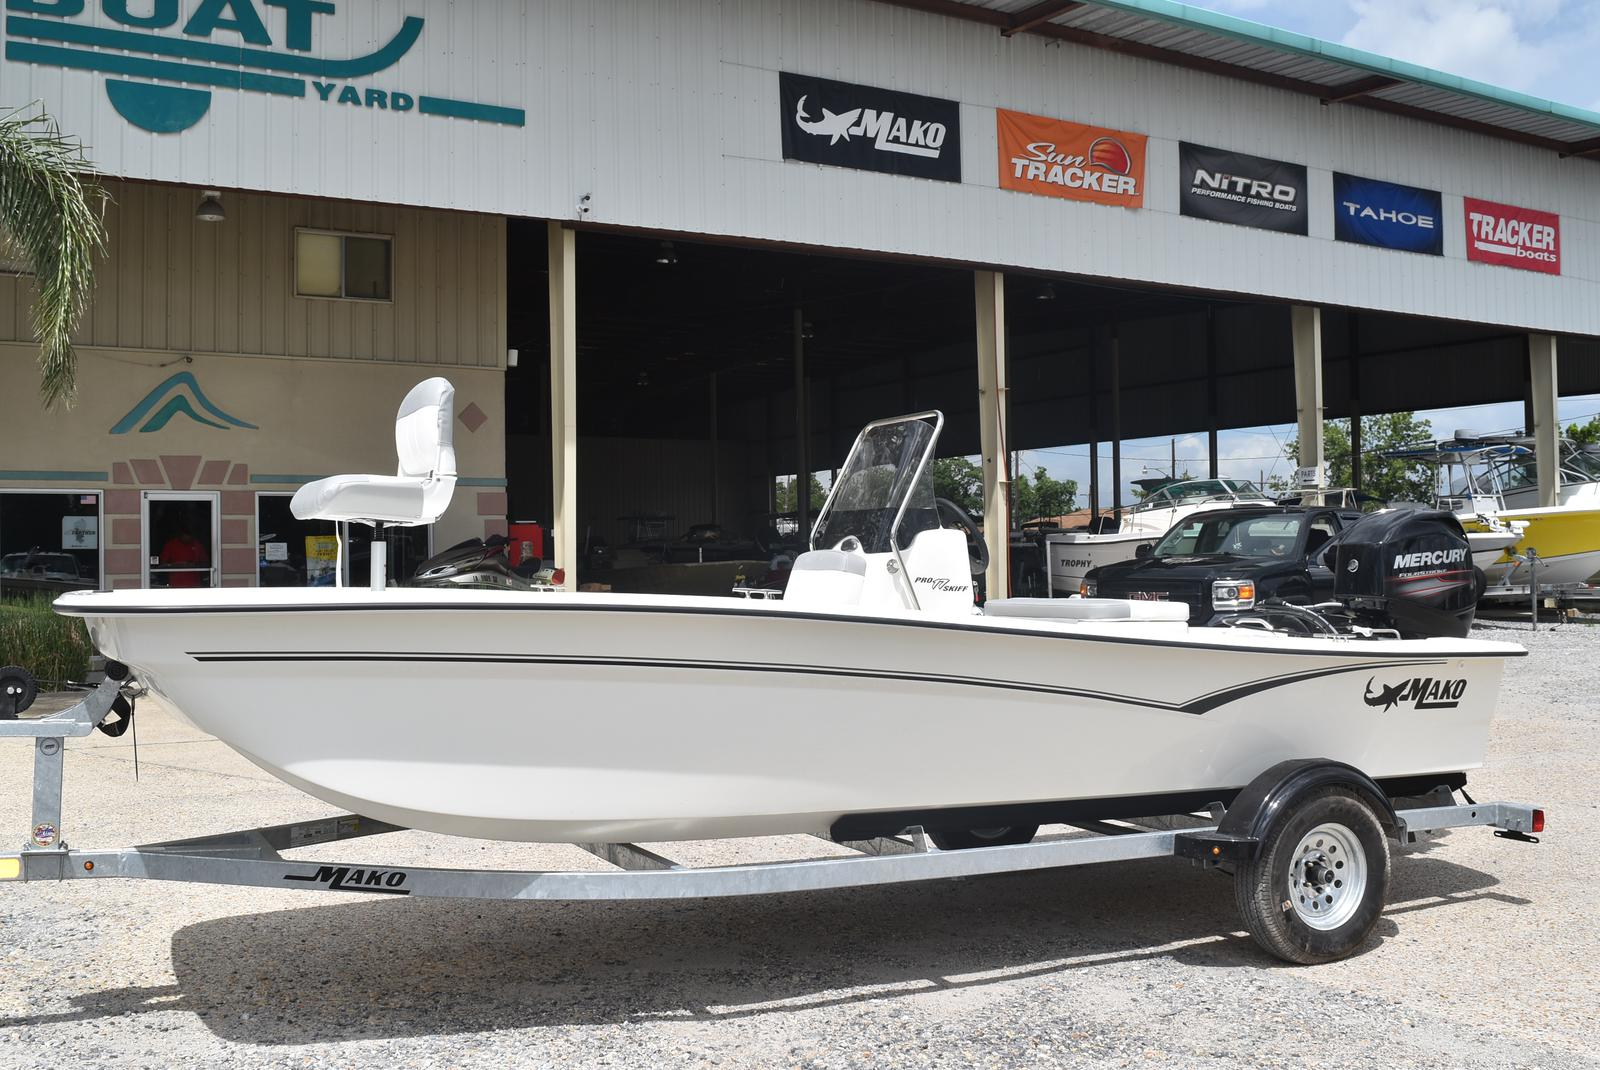 2020 Mako boat for sale, model of the boat is Pro Skiff 17, 75 ELPT & Image # 147 of 702